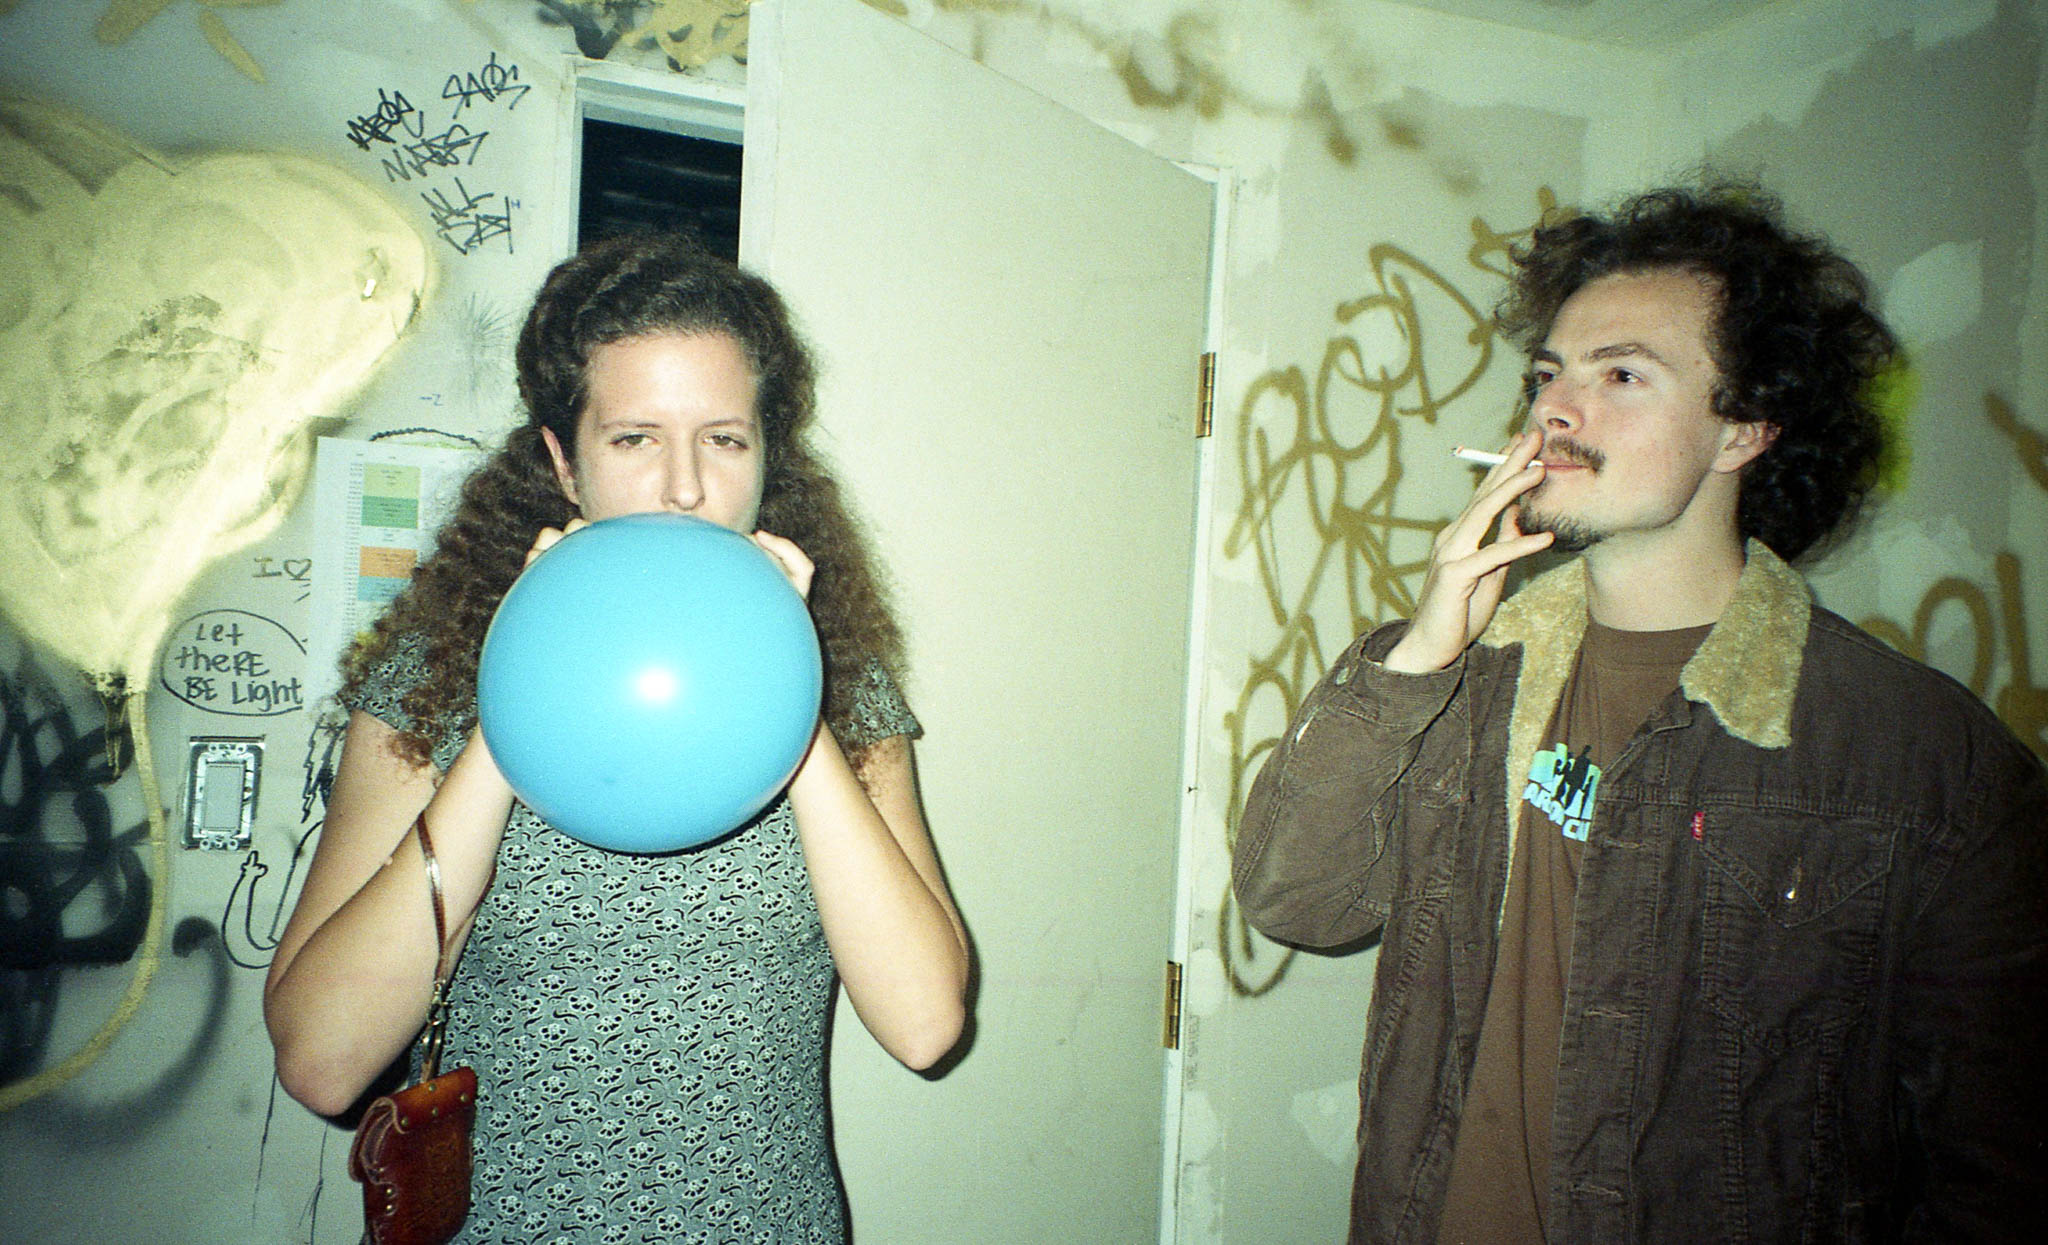 pelly on the balloon and wexler smoking.jpg